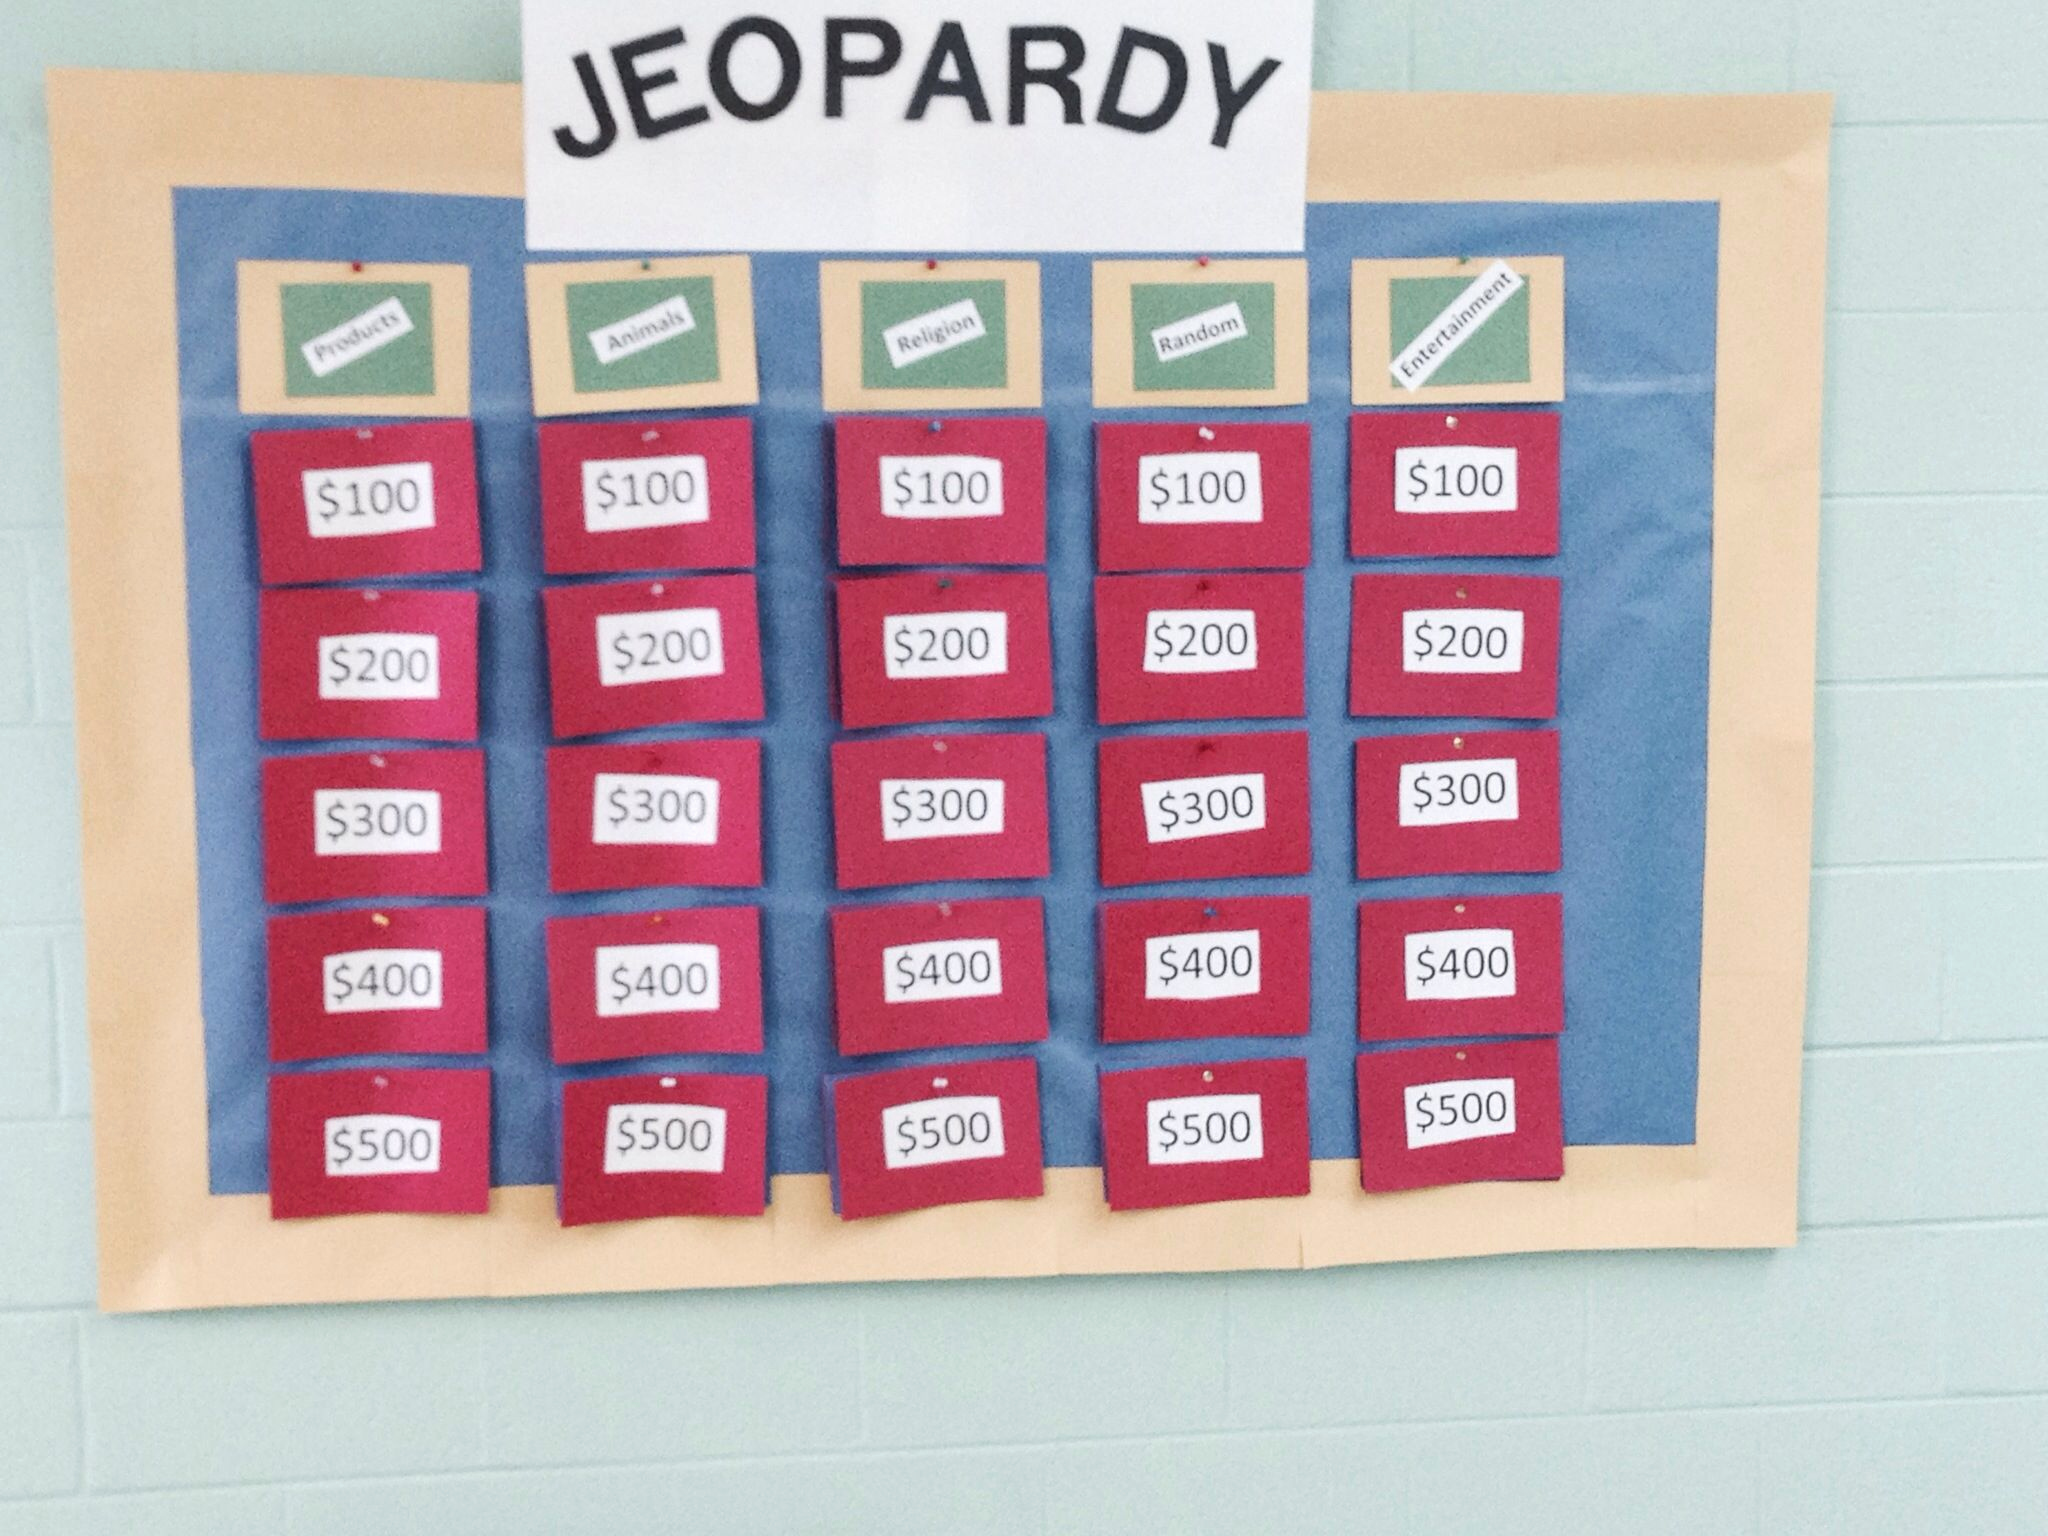 """Create Your Own Jeopardy Game Best Of Jeopardy Board for Our Church """"junk Food and Jeopardy"""